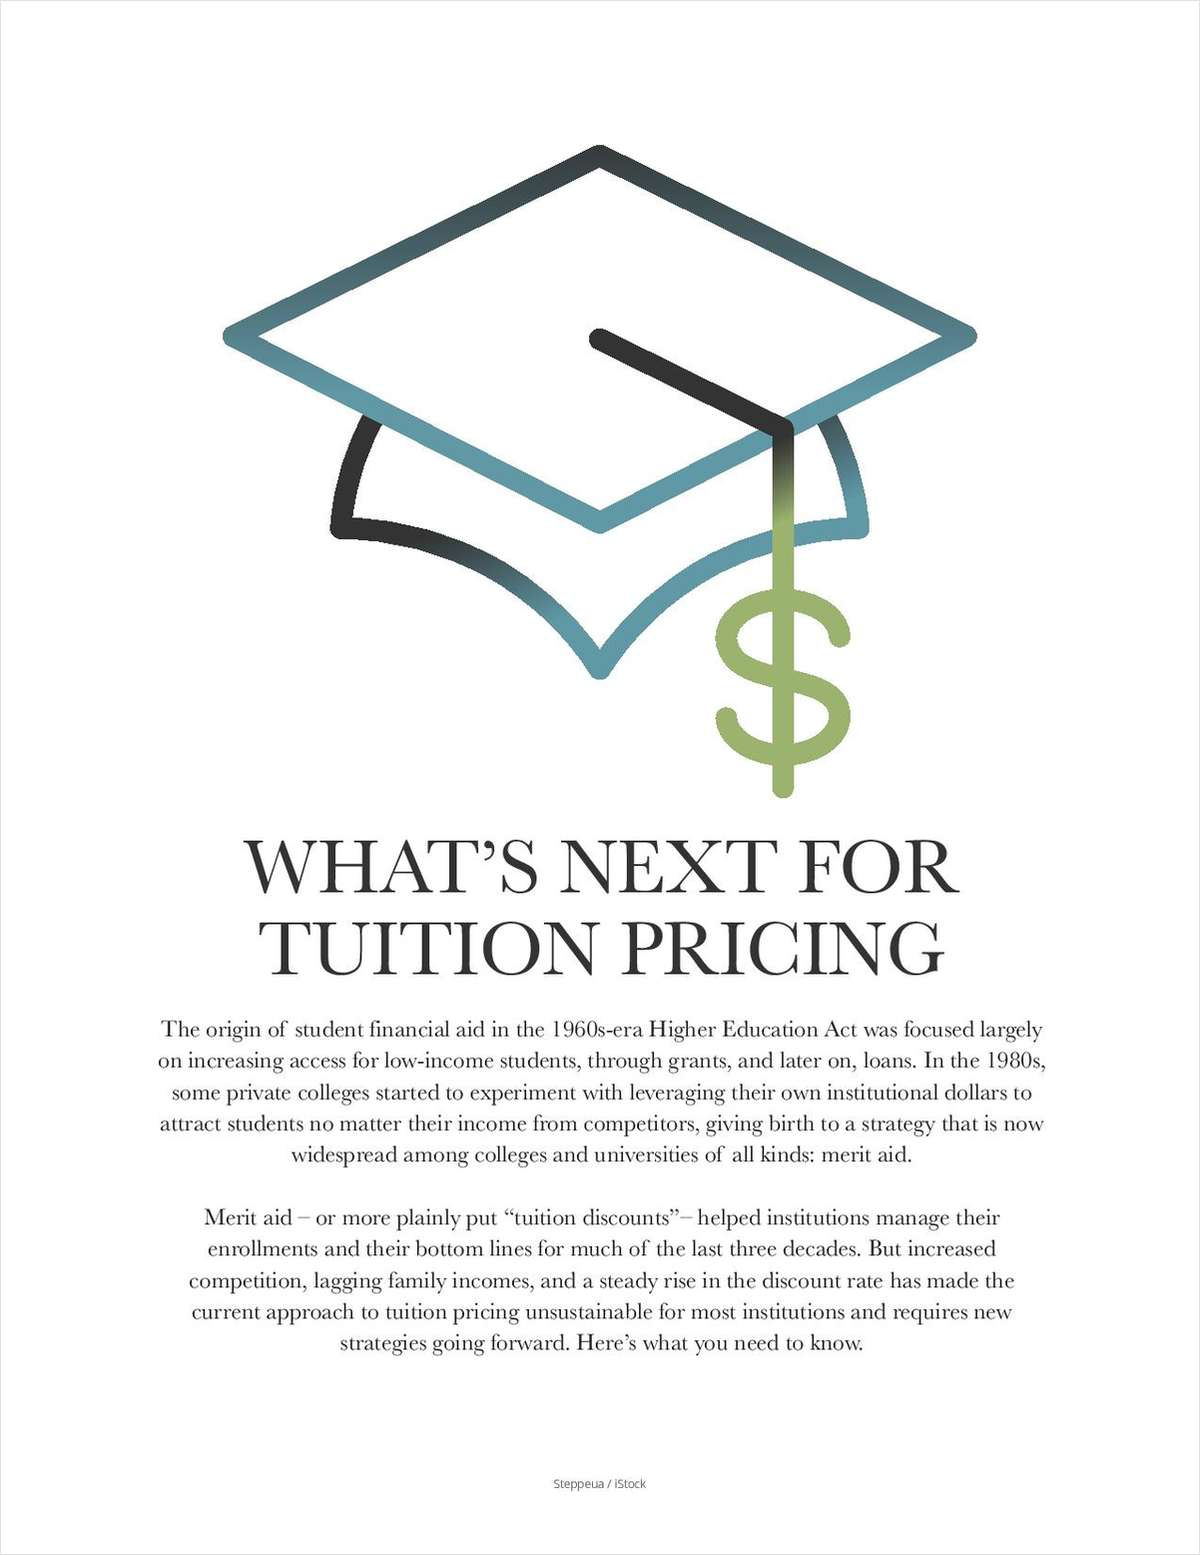 What's Next for Tuition Pricing?